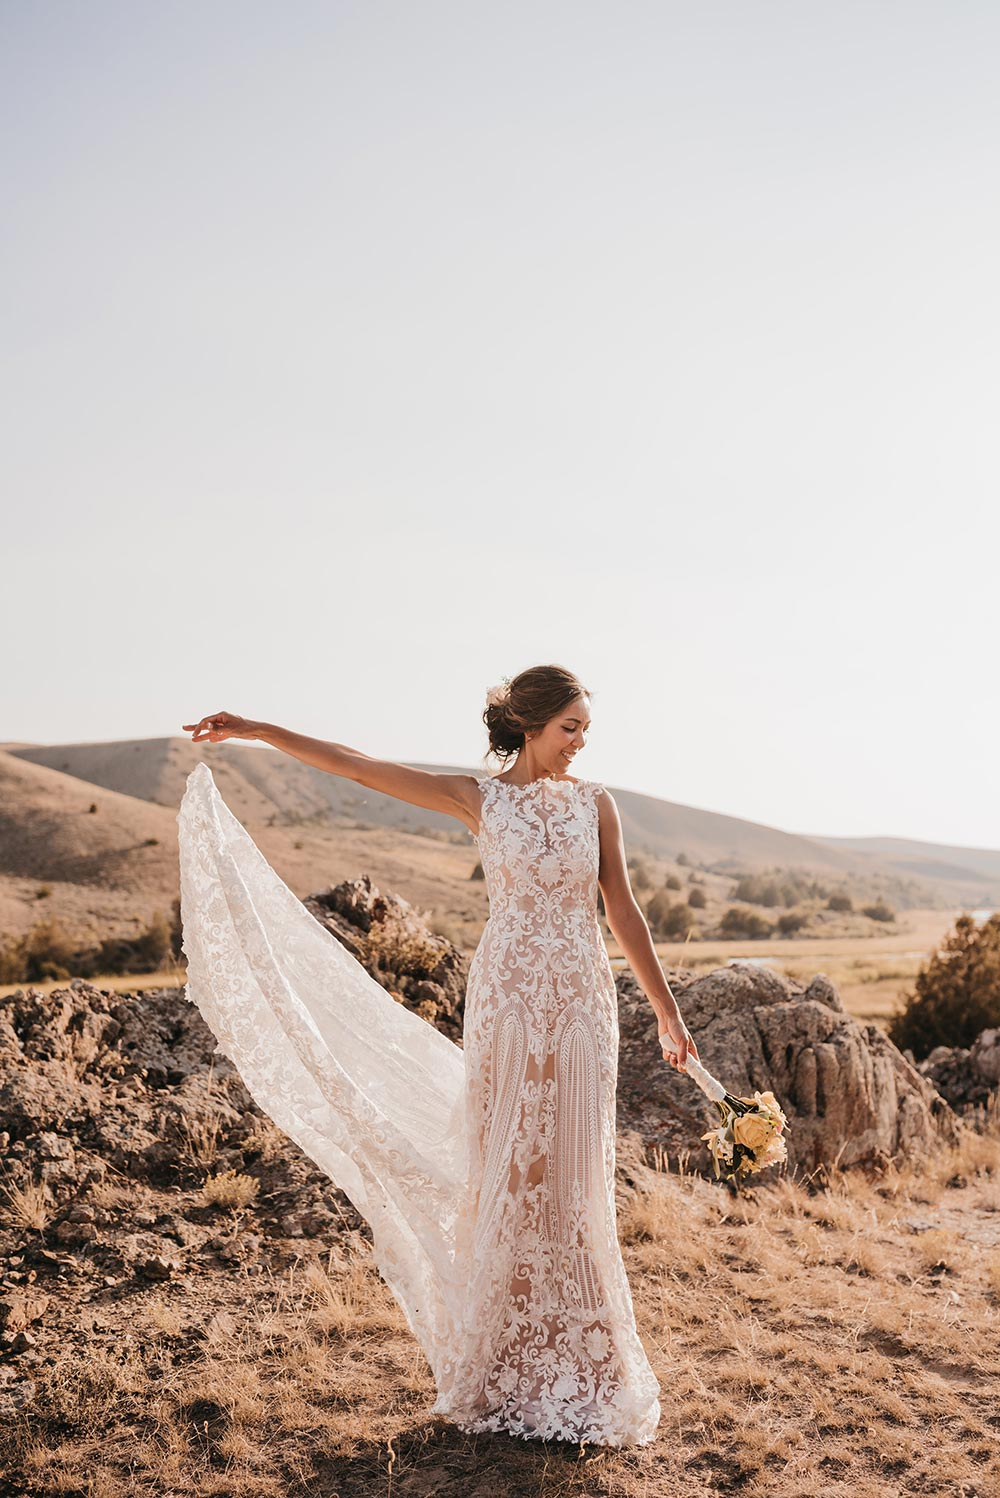 embroidered wedding dress with sleeveless silhouette